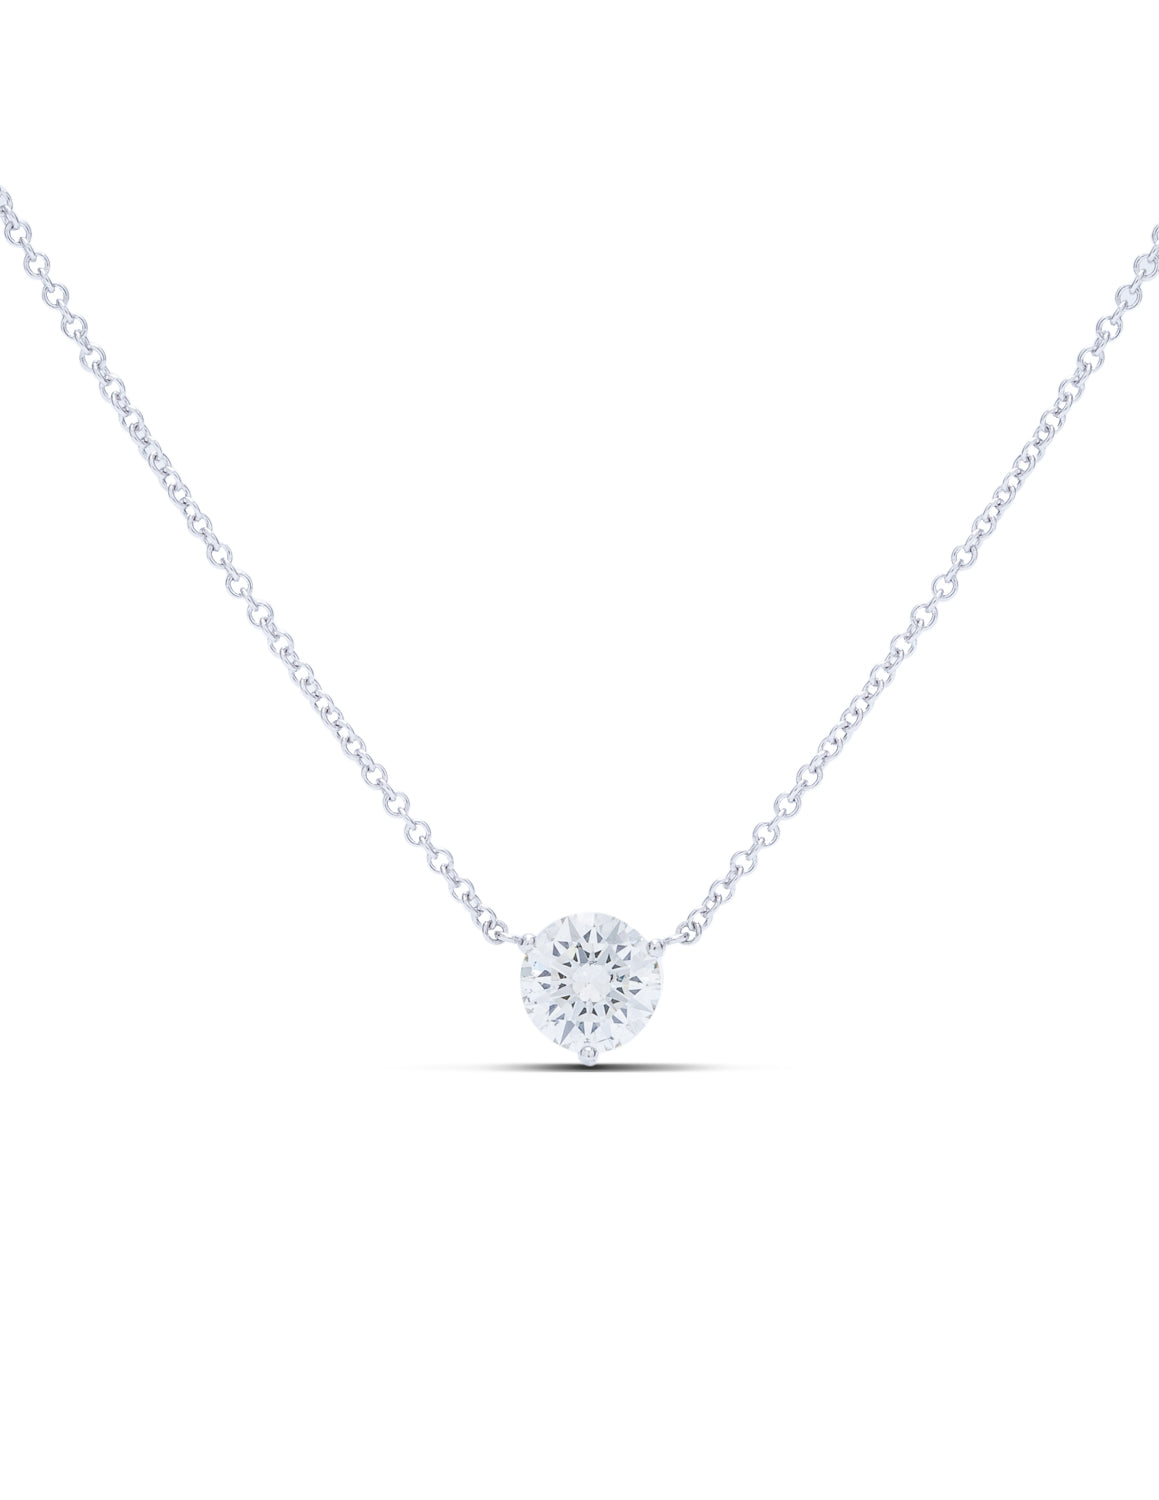 Diamond Solitaire Martini Prong Pendant - Charles Koll Jewellers